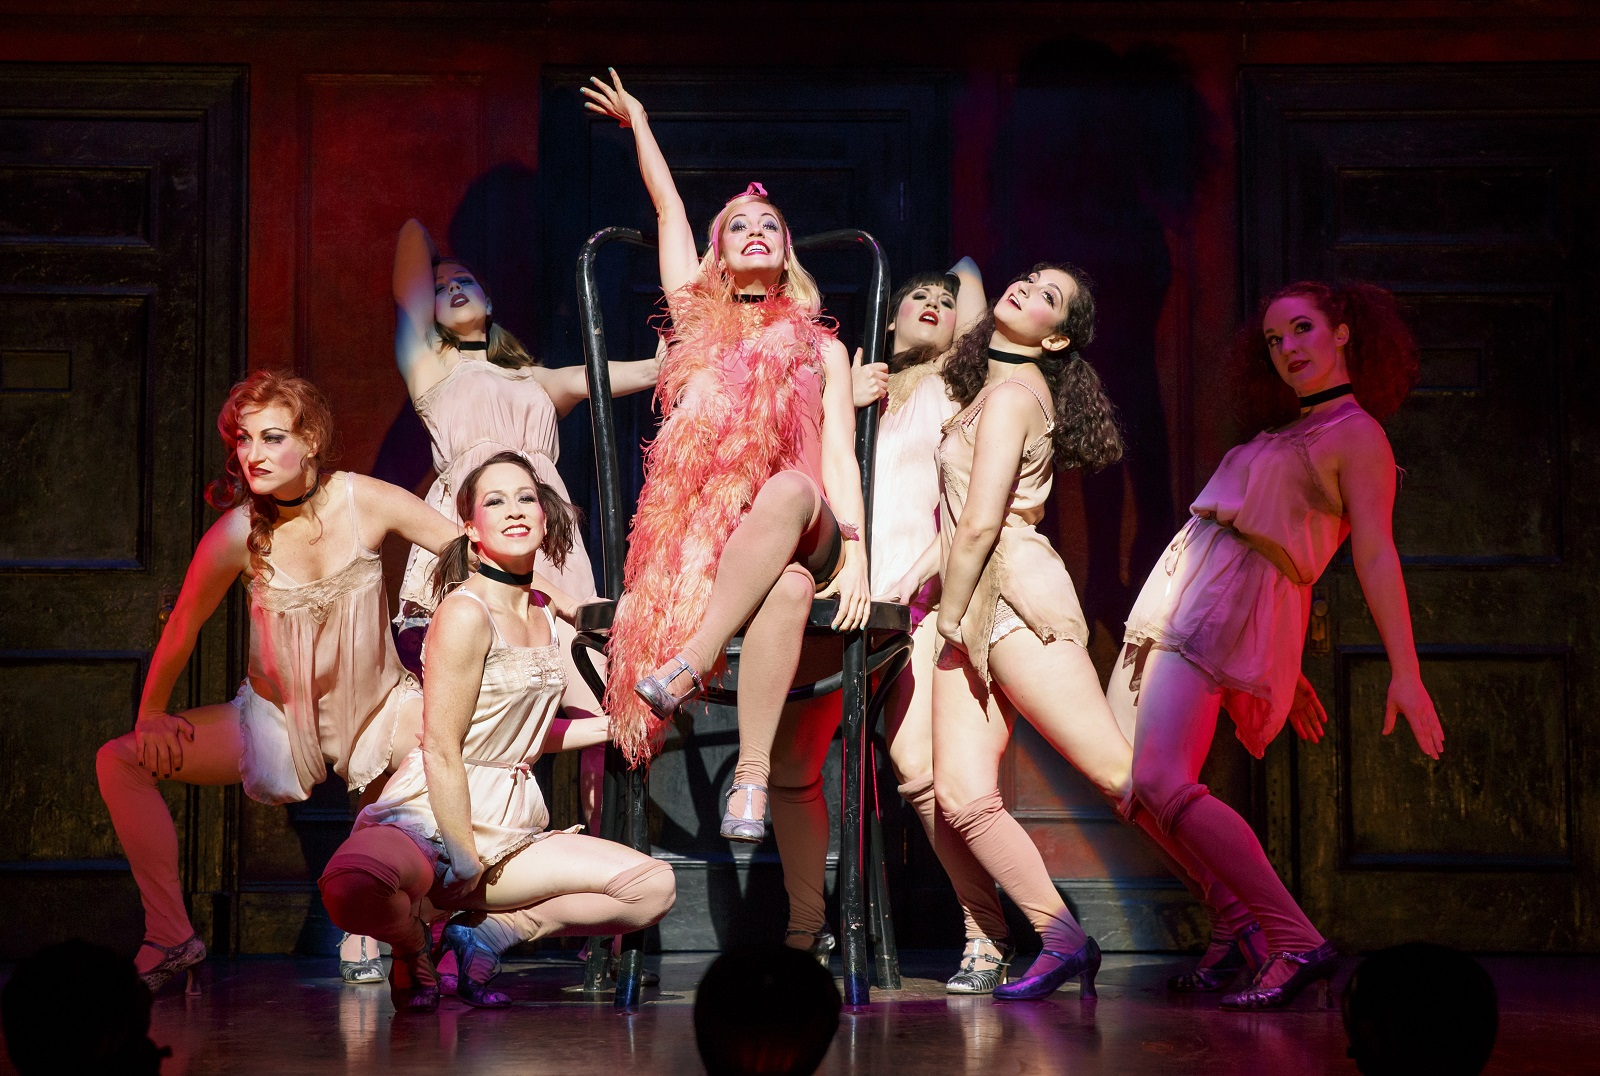 The latest touring production of 'Cabaret' is a must-see at Shea's Performing Arts Center.